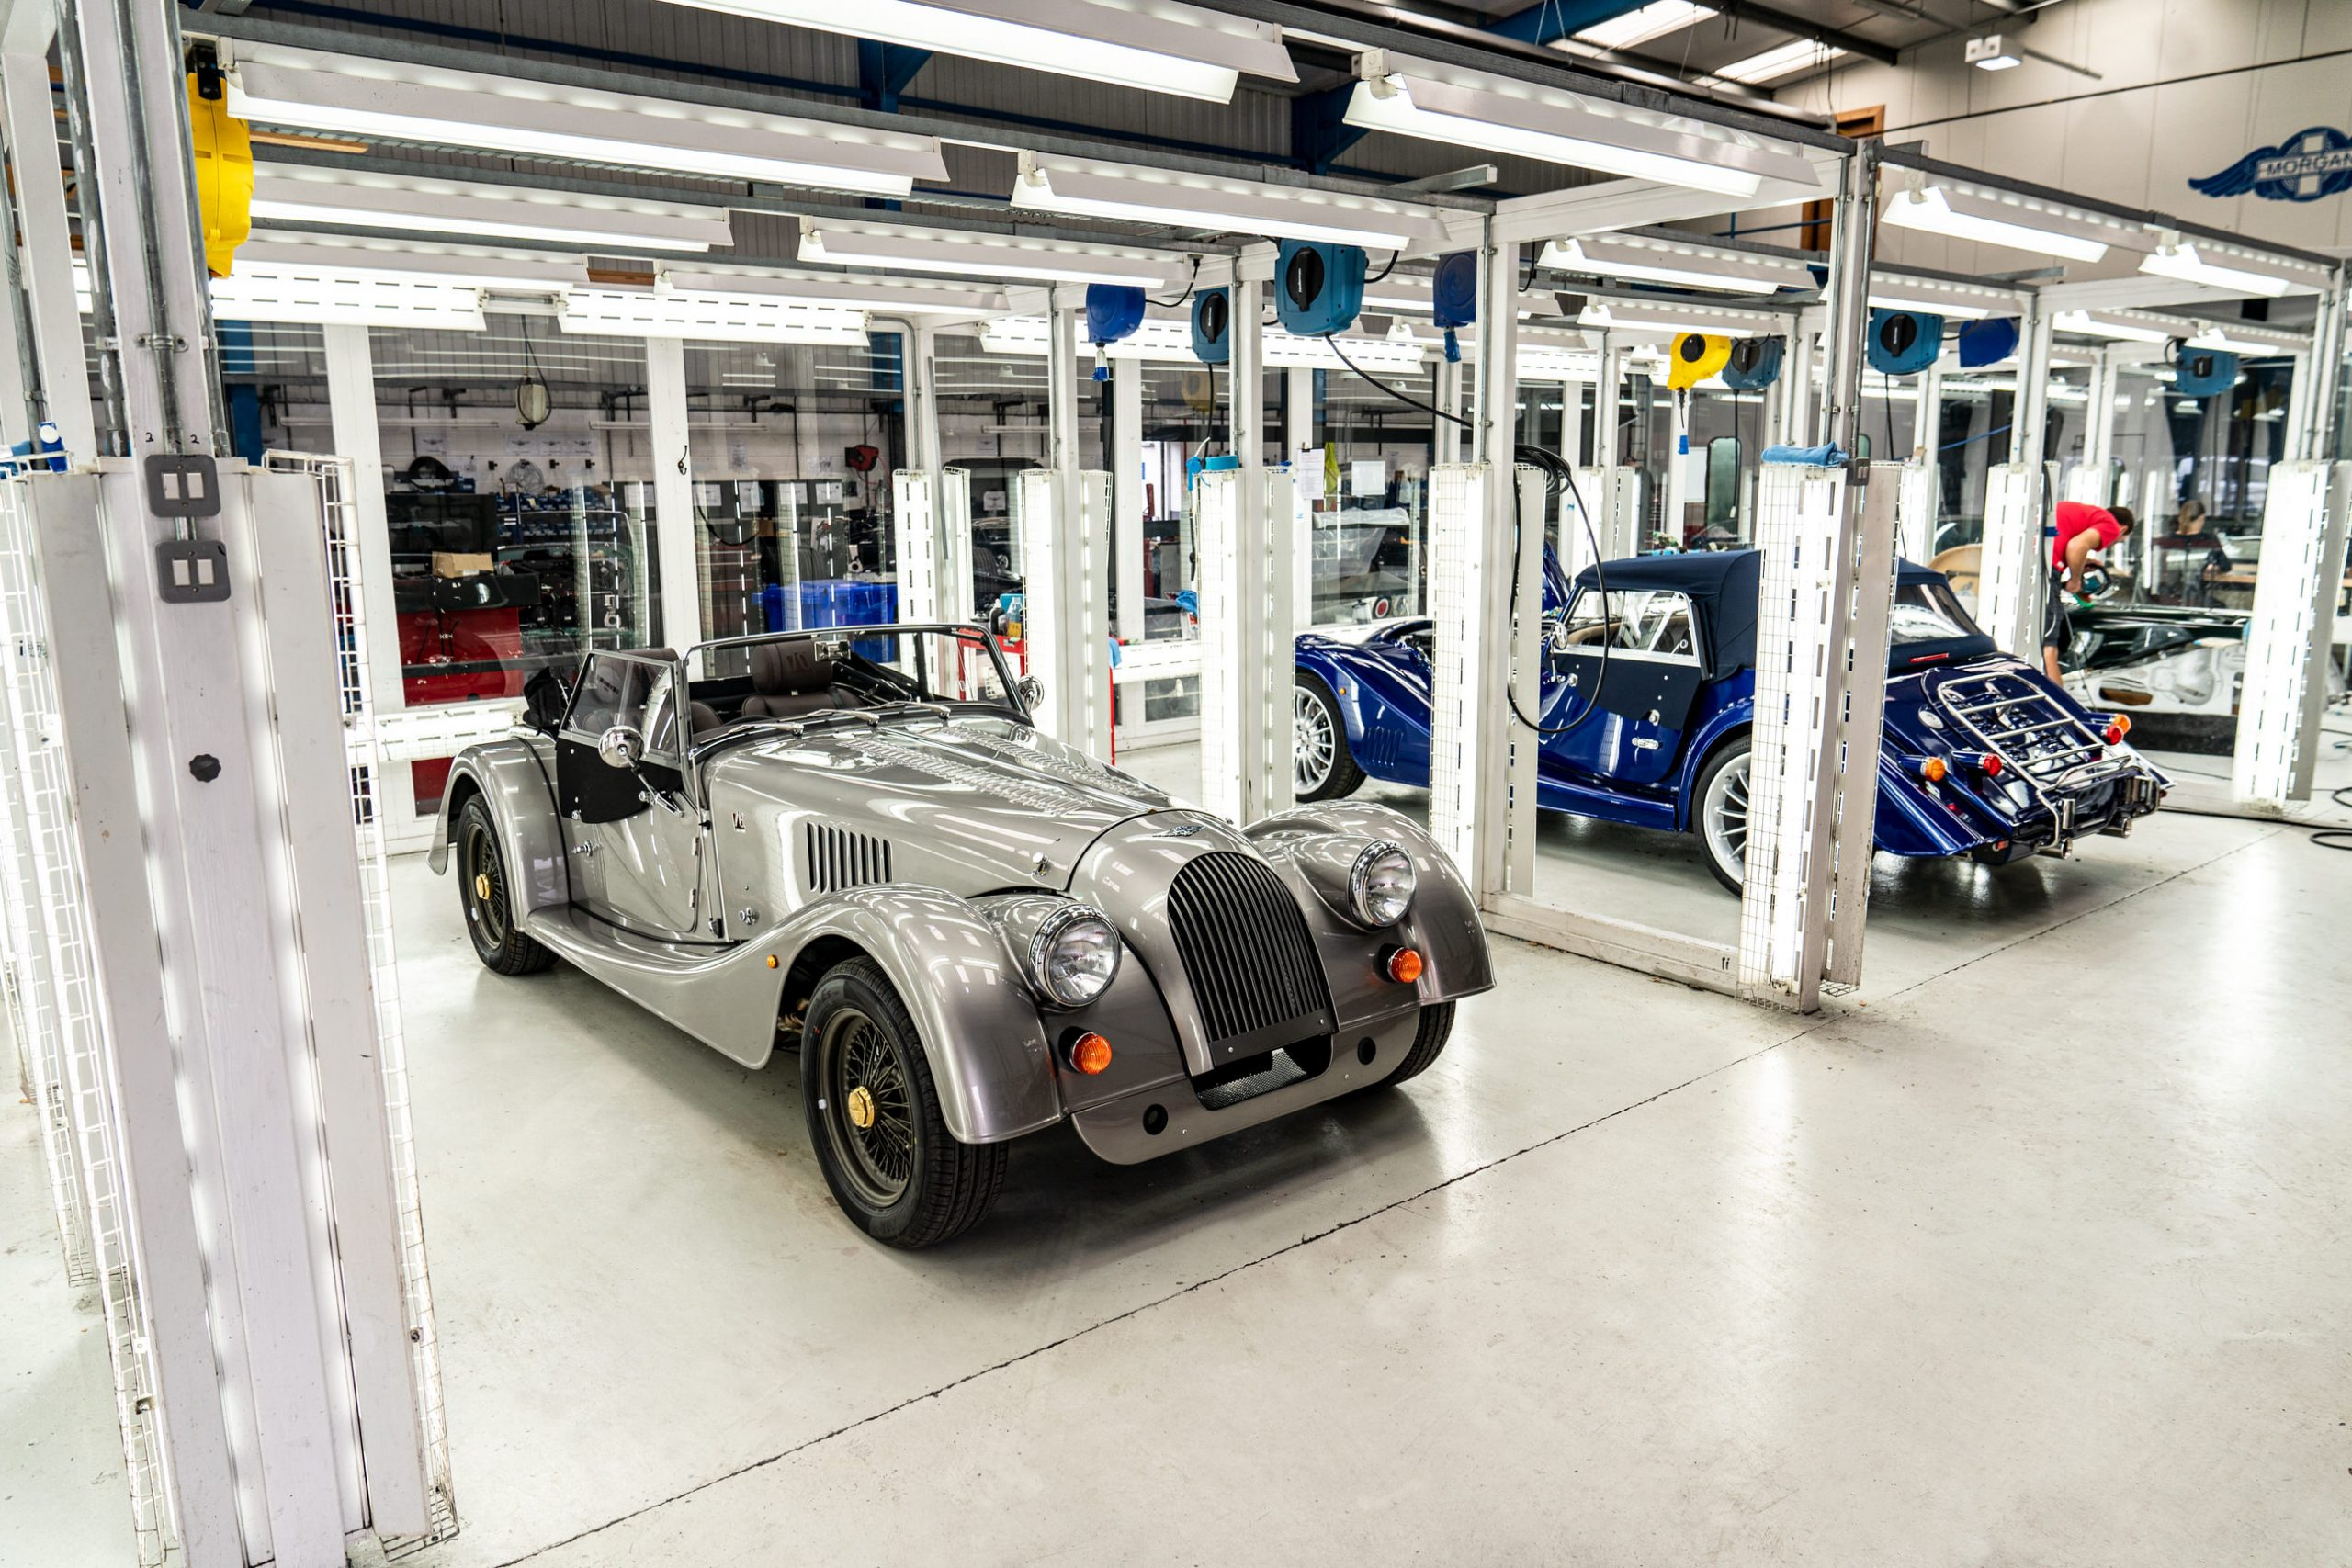 The last steel-chassis Morgan leaves the factory